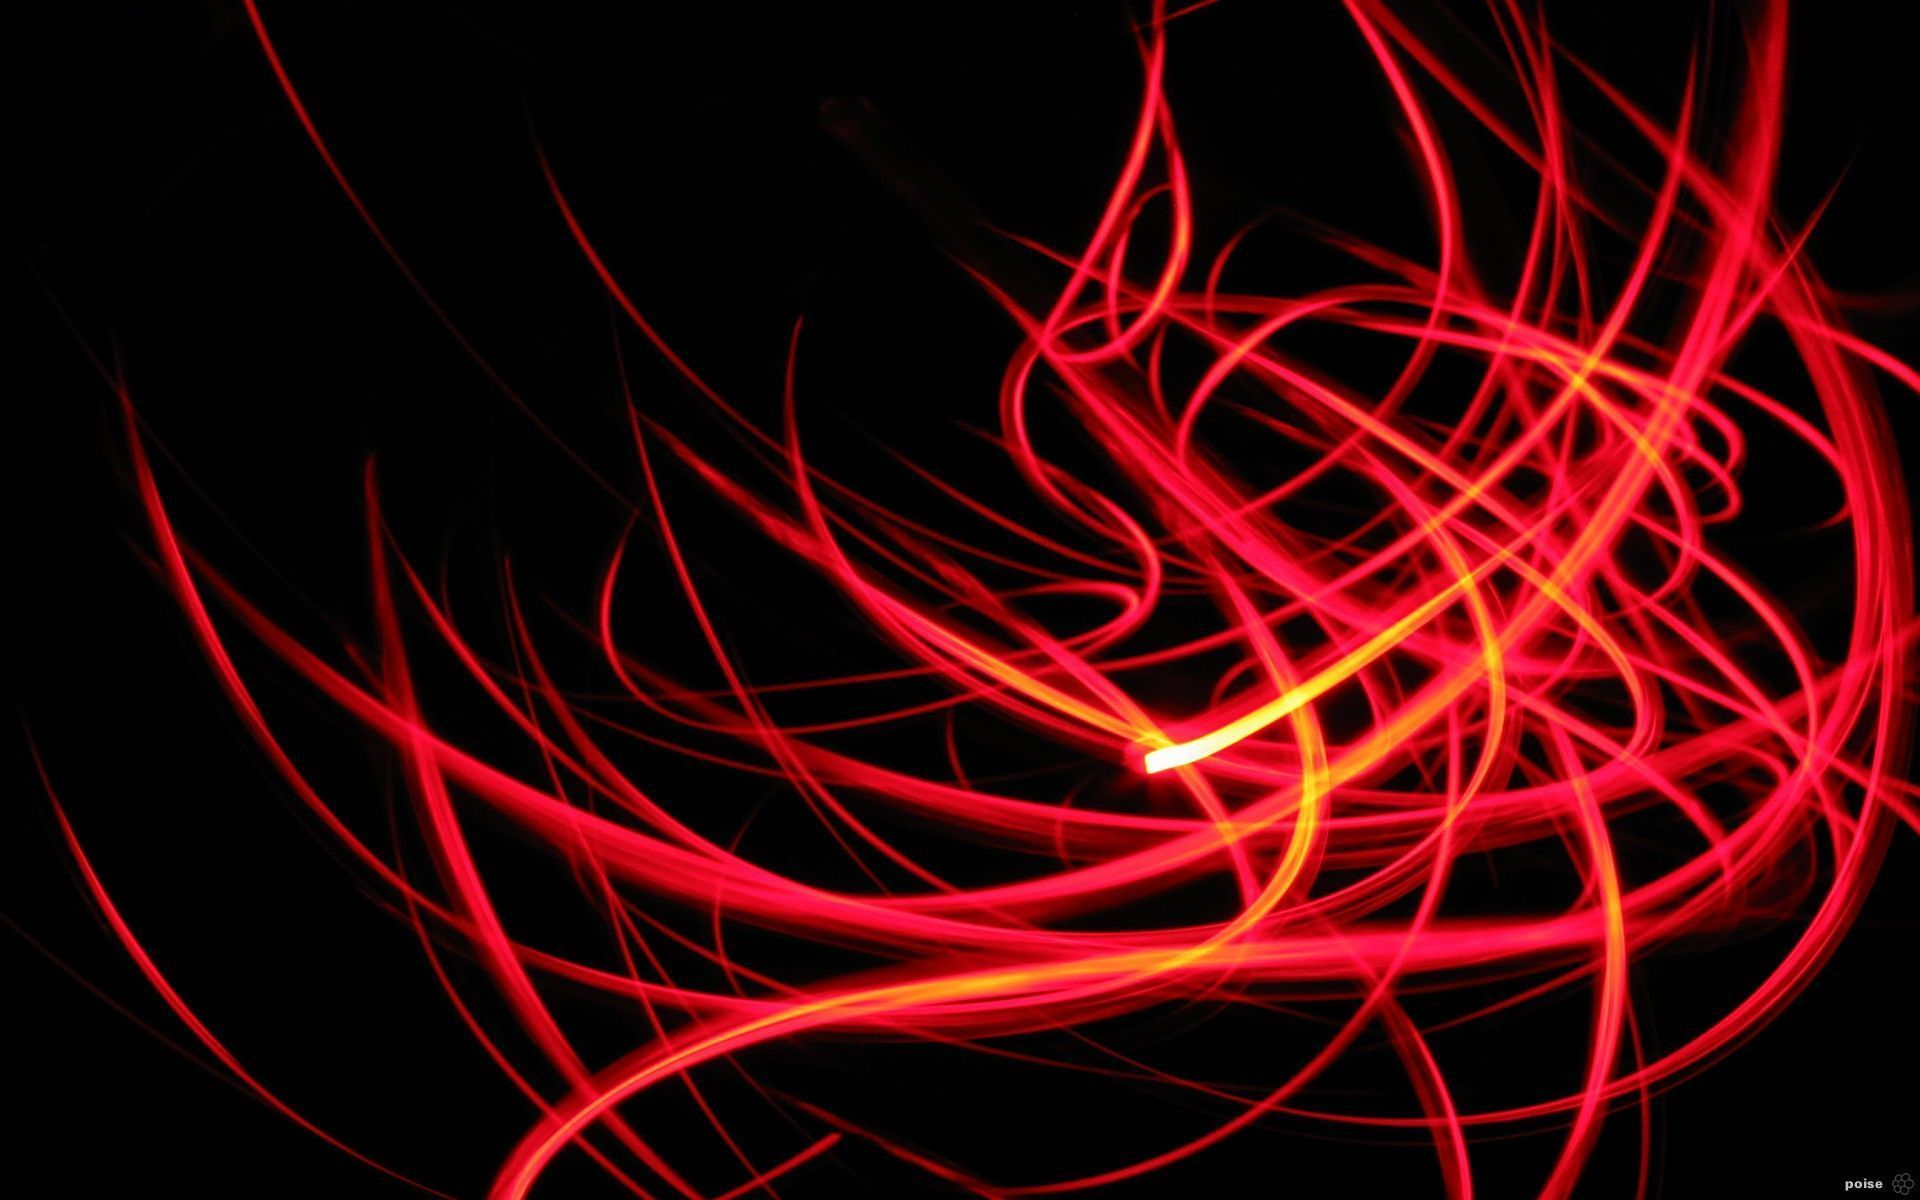 Cool black and red background designs